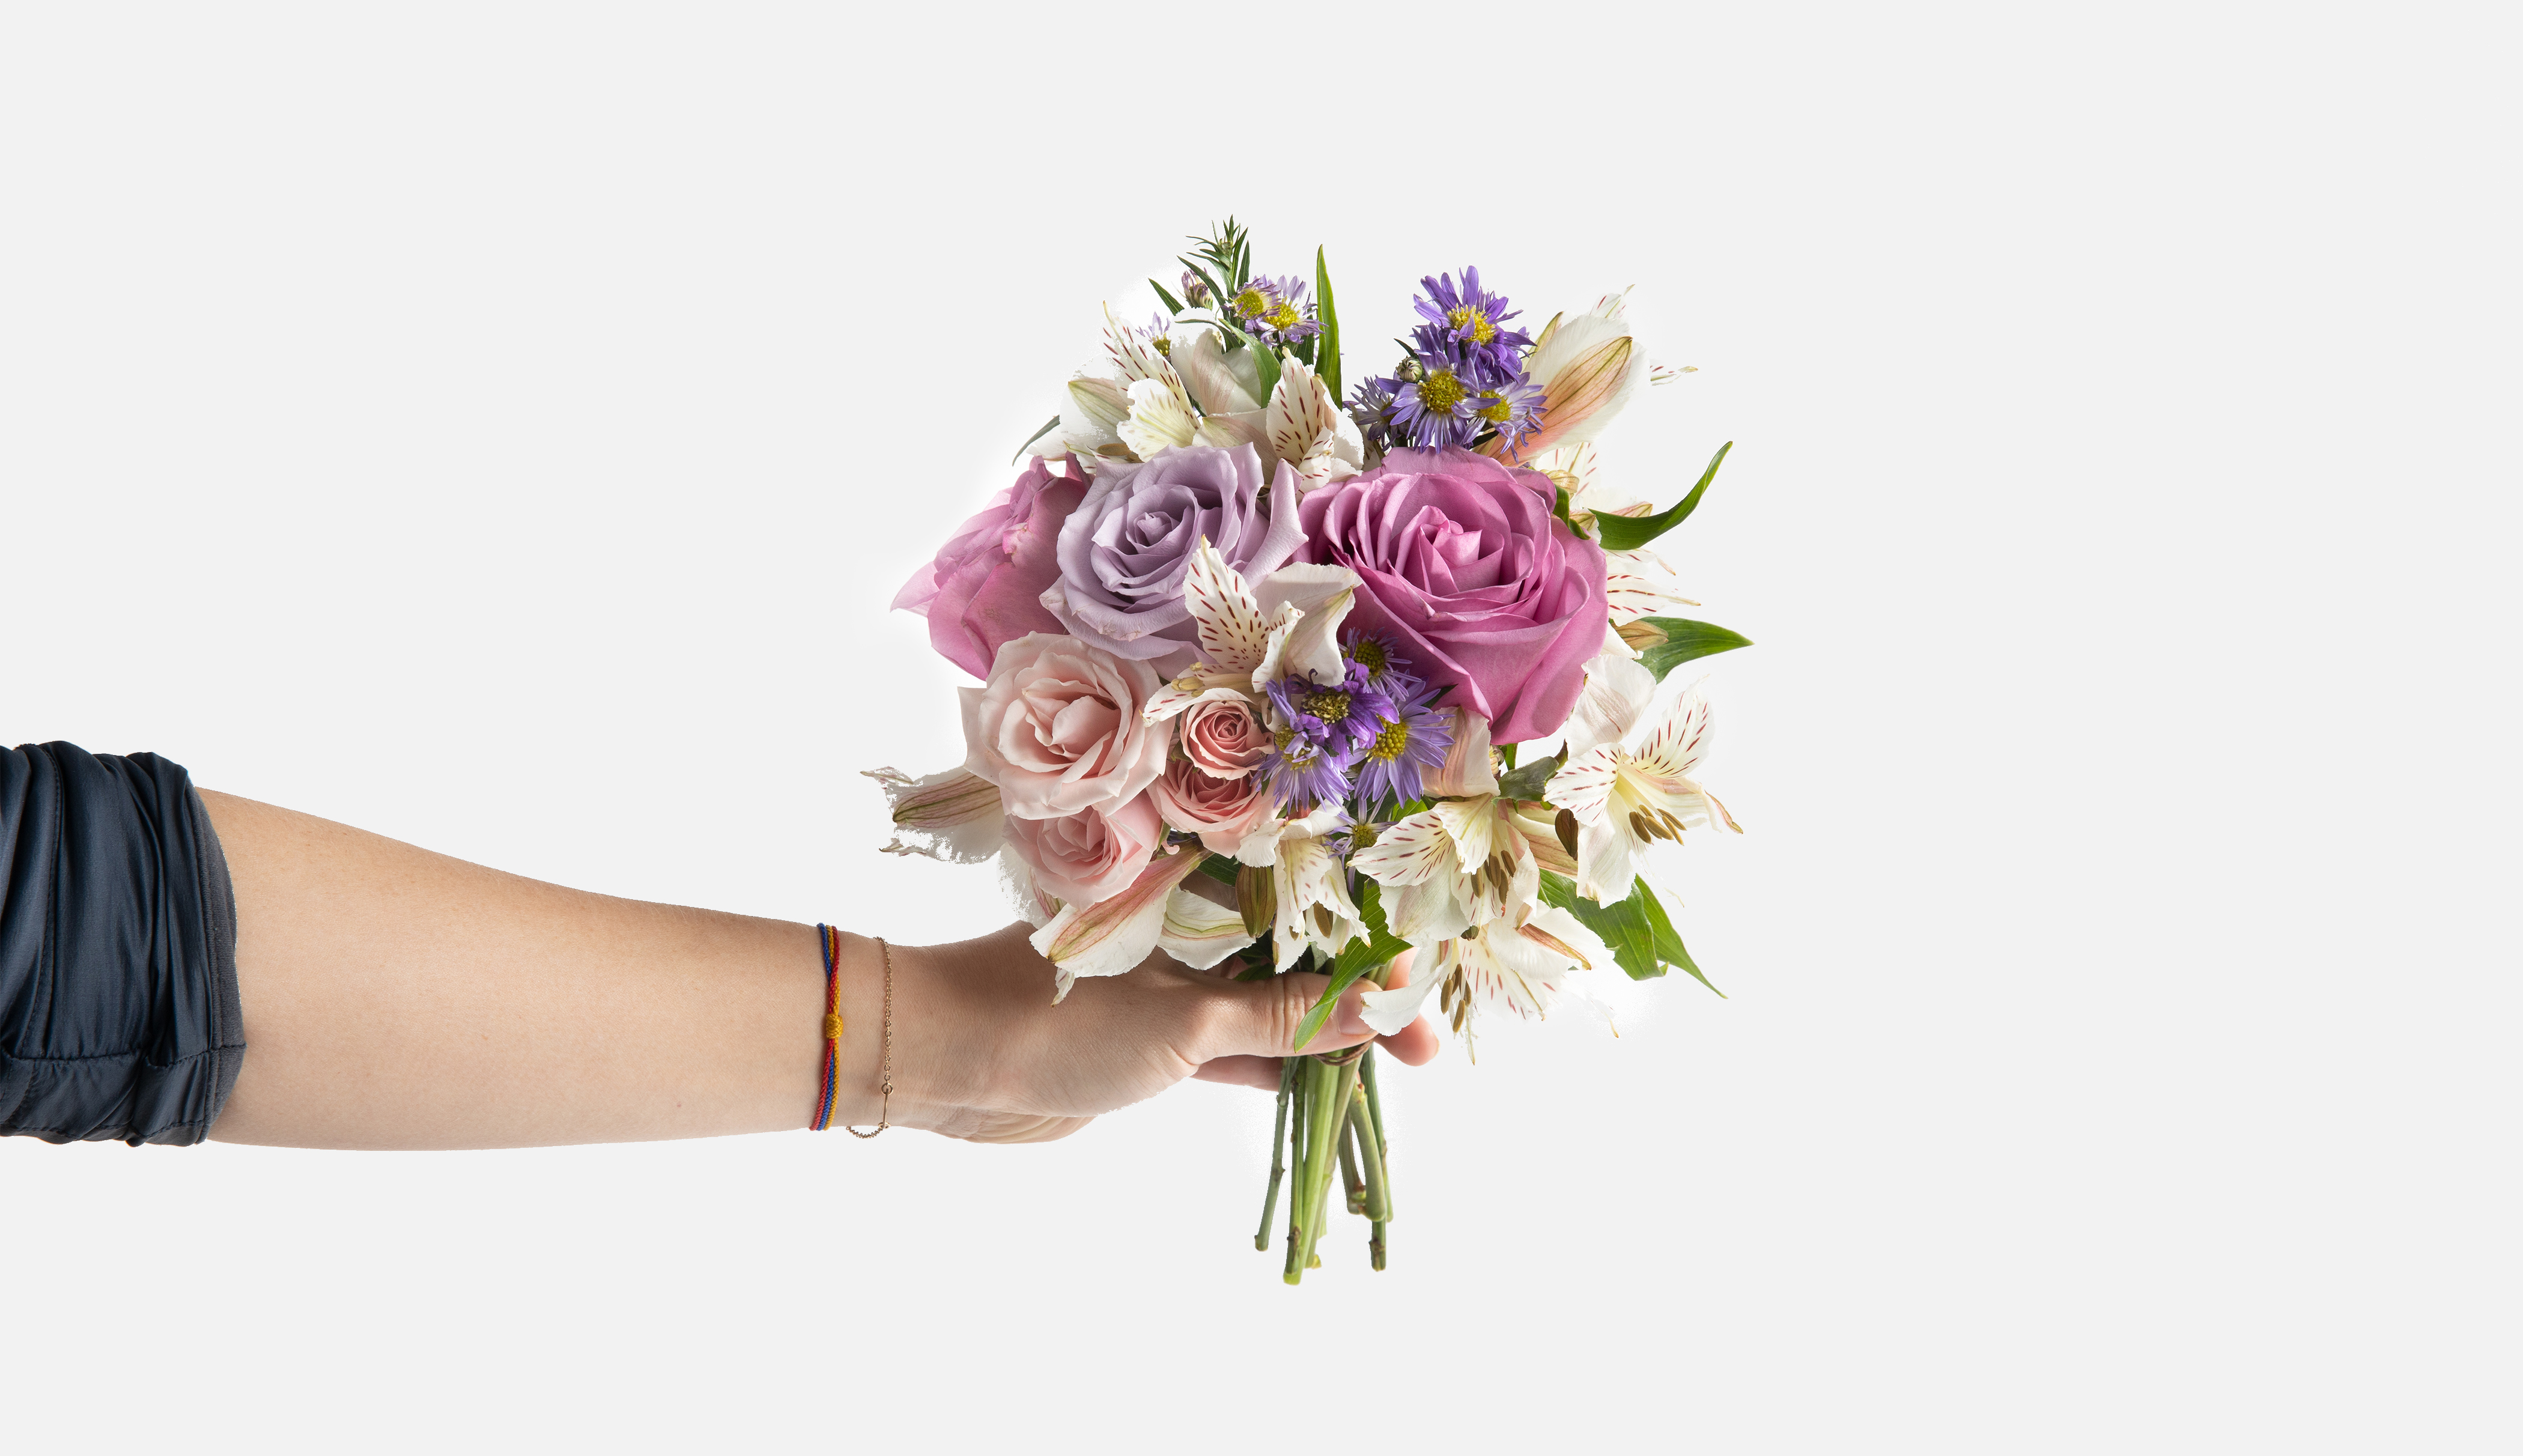 Hand holding a mini bouquet